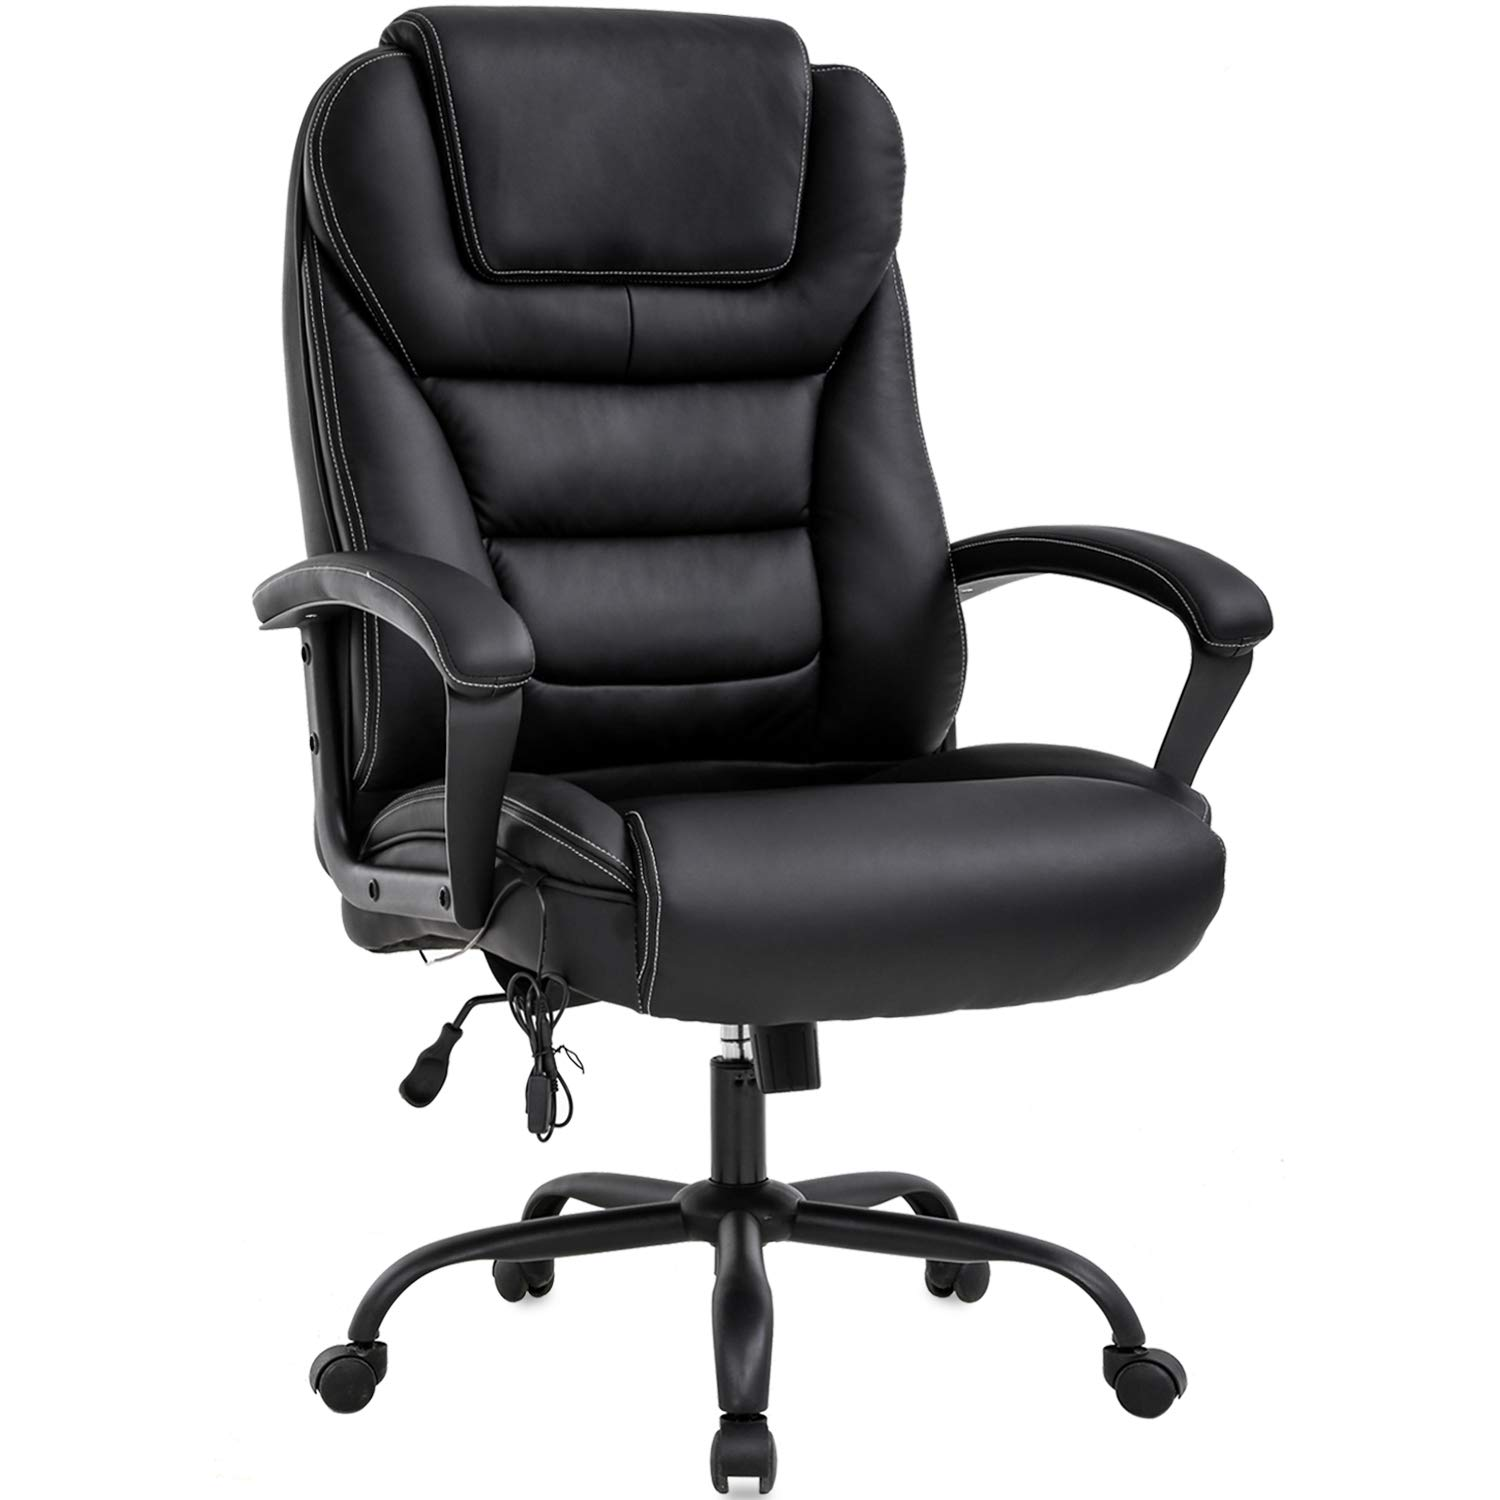 Big and Tall Office Chair 500lbs Wide Seat Ergonomic Desk Chair with Lumbar Support Arms High Back PU Leather Executive Task Computer Chair for Heavy People Women,Black by BestMassage